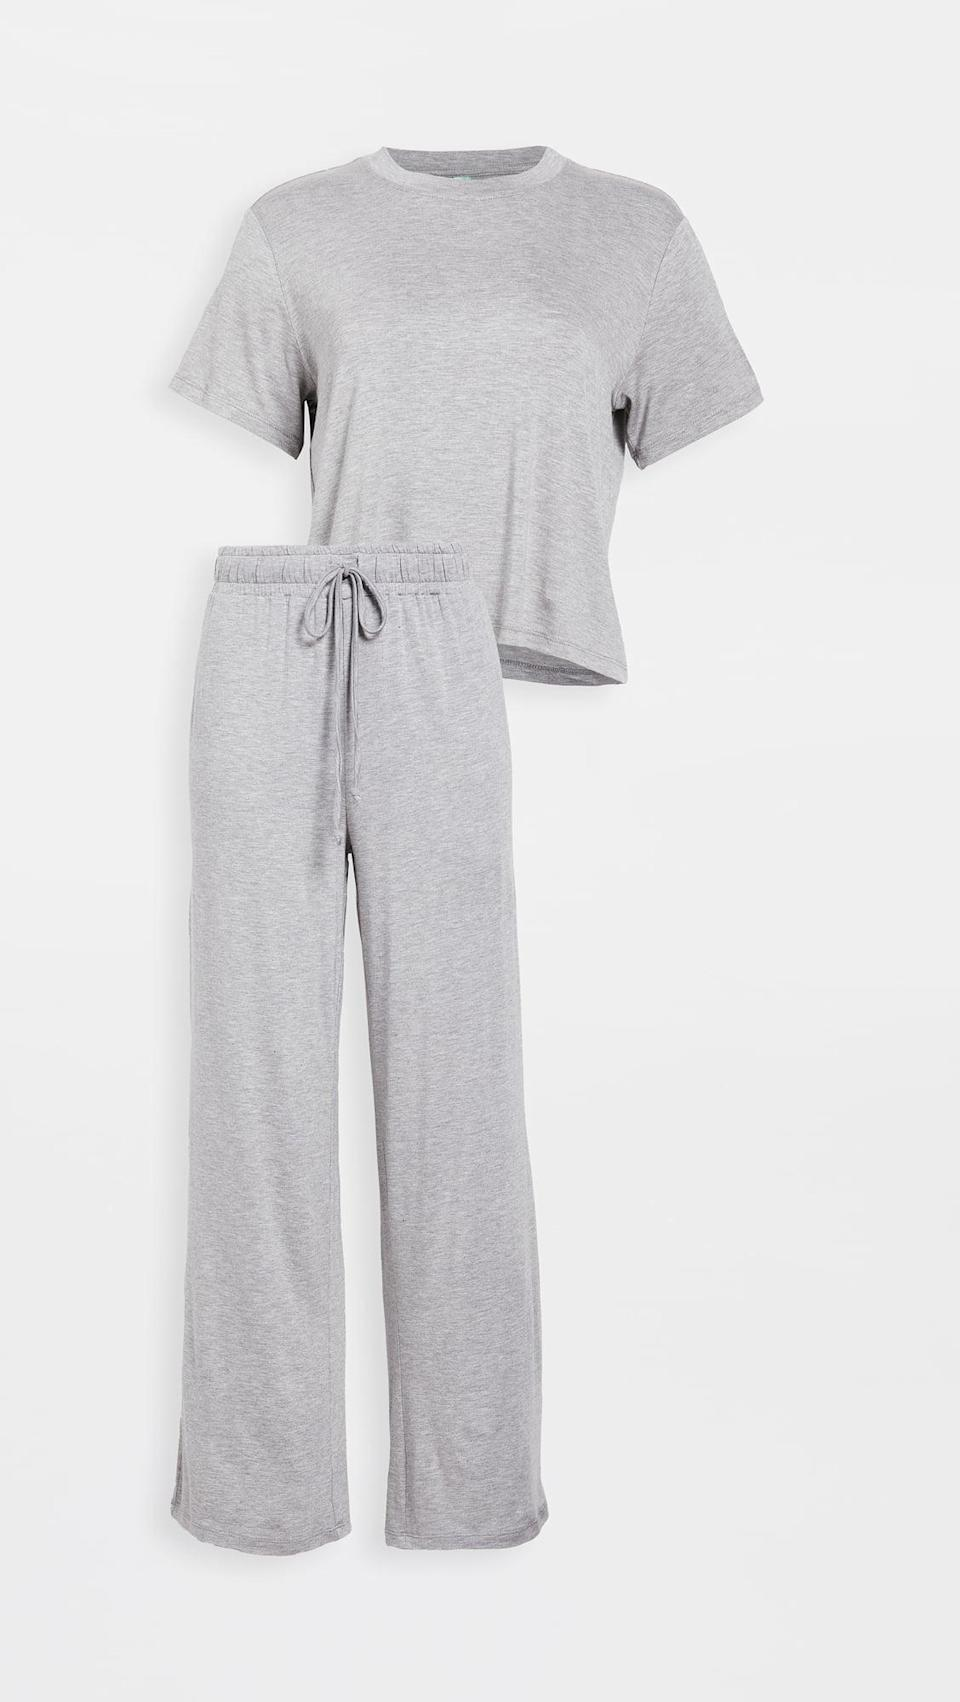 <p>There's nothing not to like about this classic <span>Honeydew Intimates All American PJ Set</span> ($48). It's cozy and minimal, just the way we like it.</p>